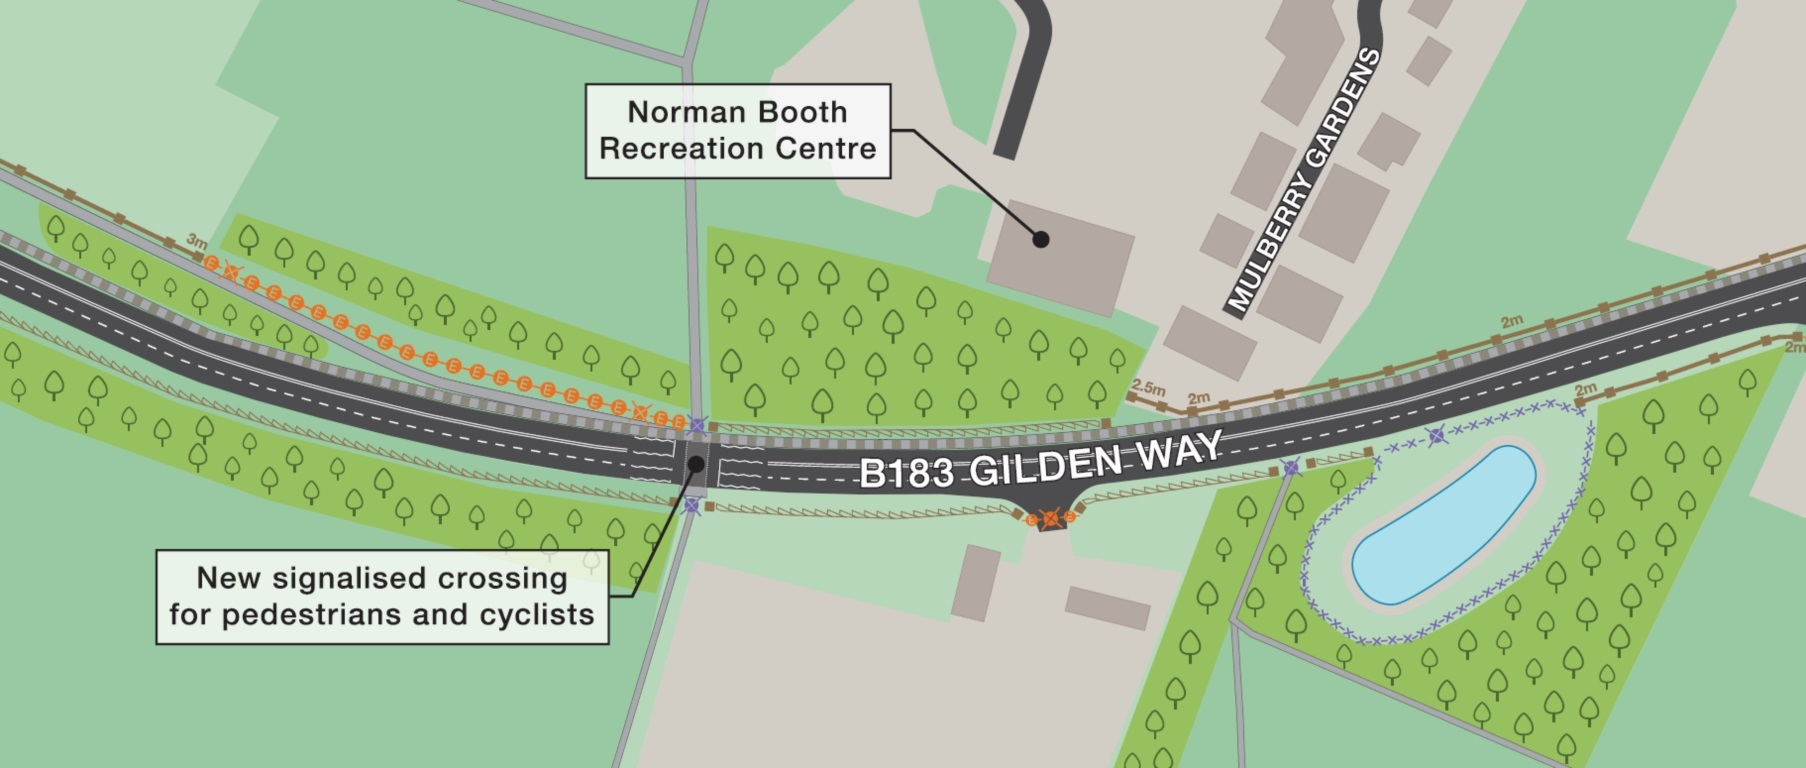 Section of map showing proposed noise barriers along Gilden Way